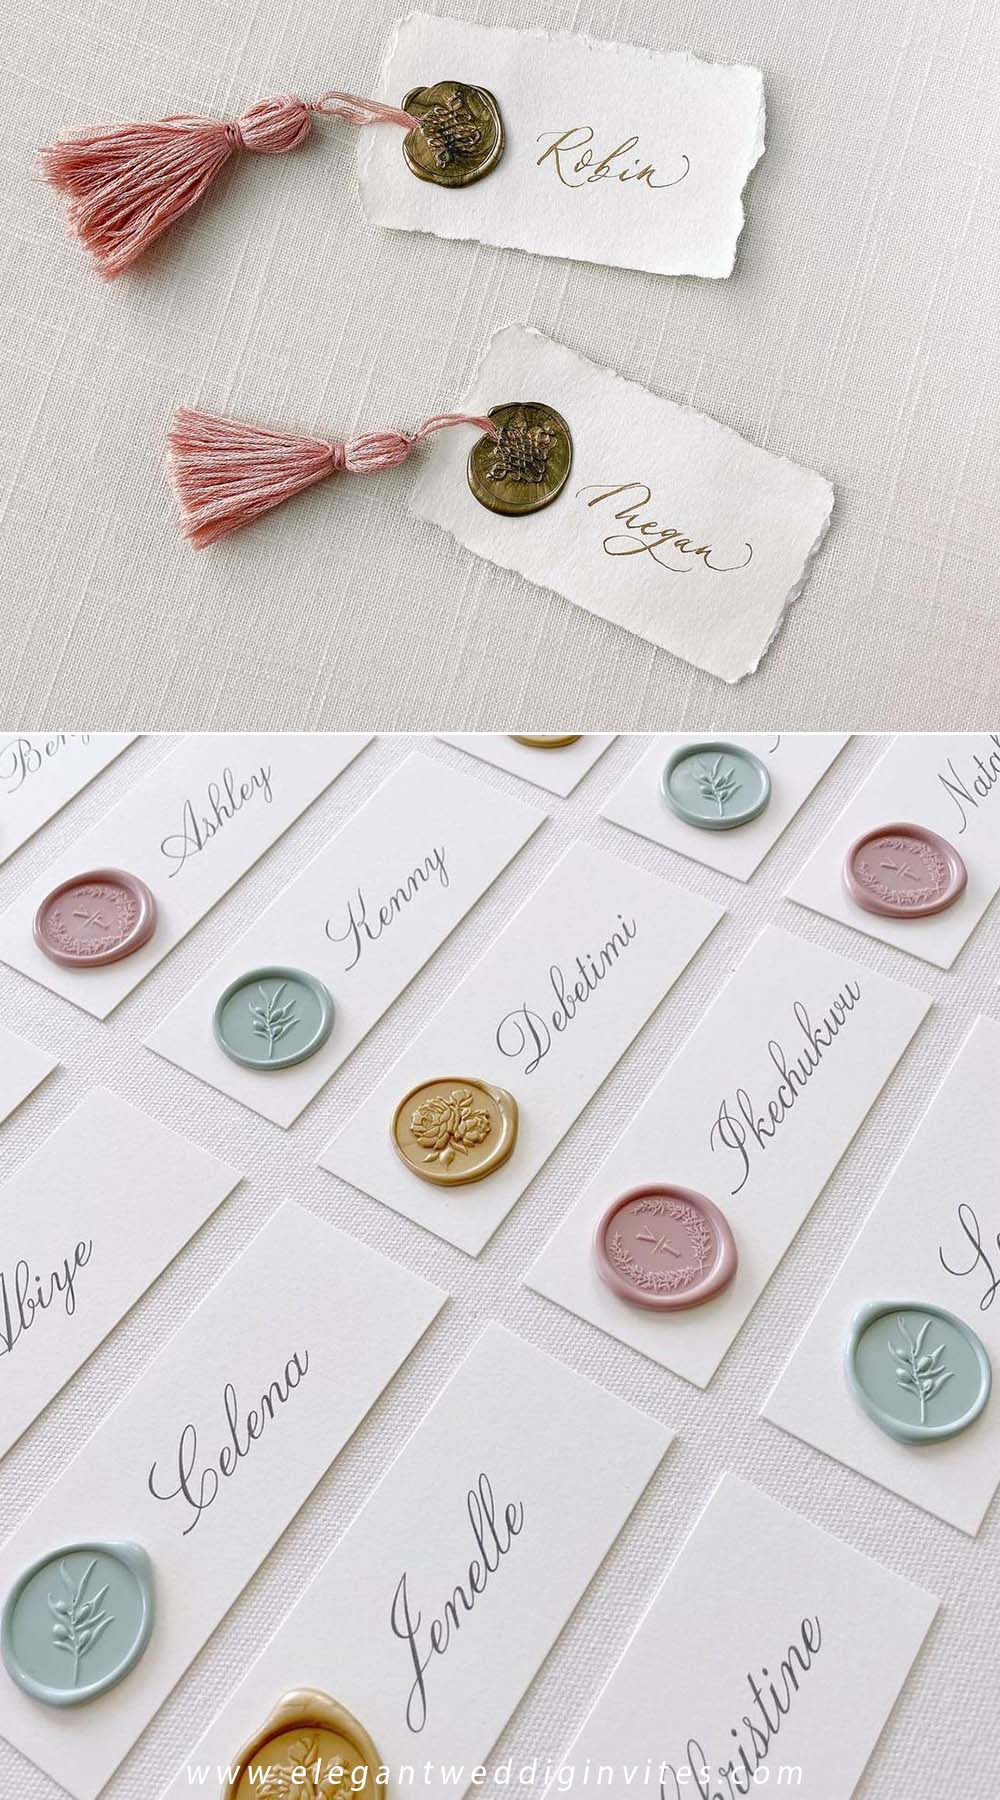 colorful wax seal stickers for diy wedding table name card ideas